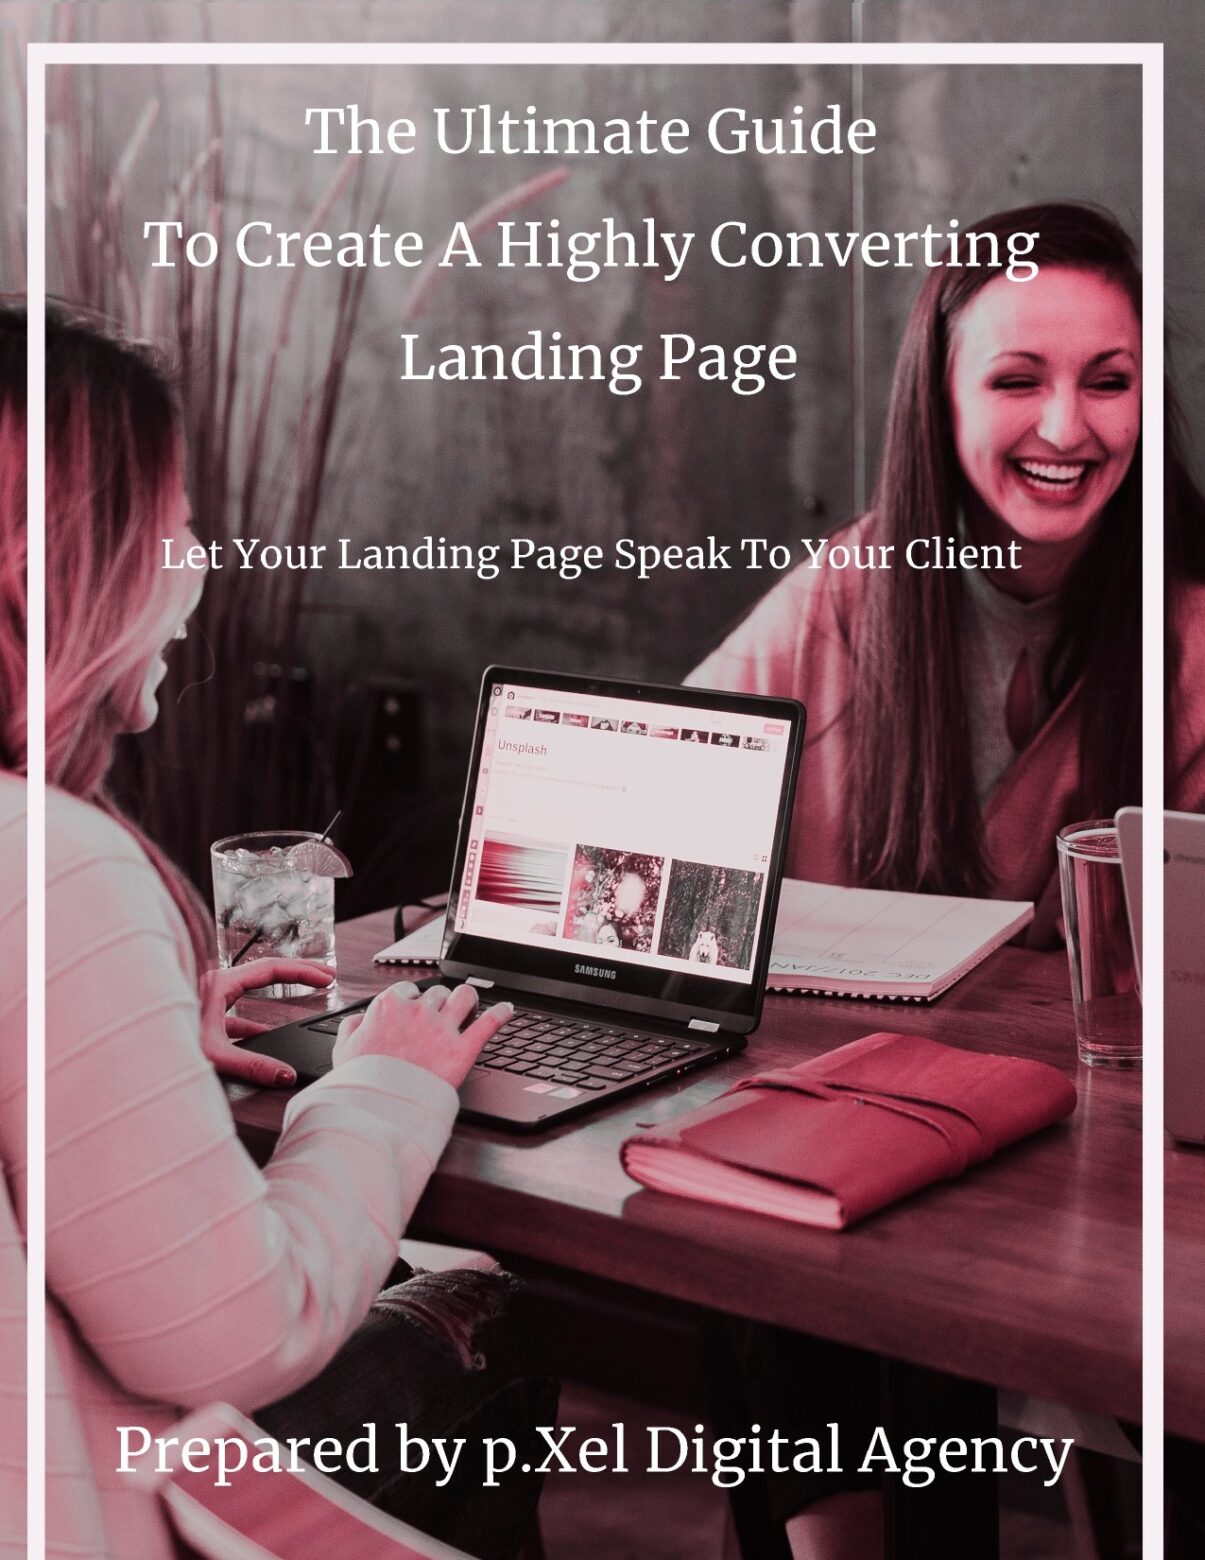 Guide to a Highly Converting Landing Page